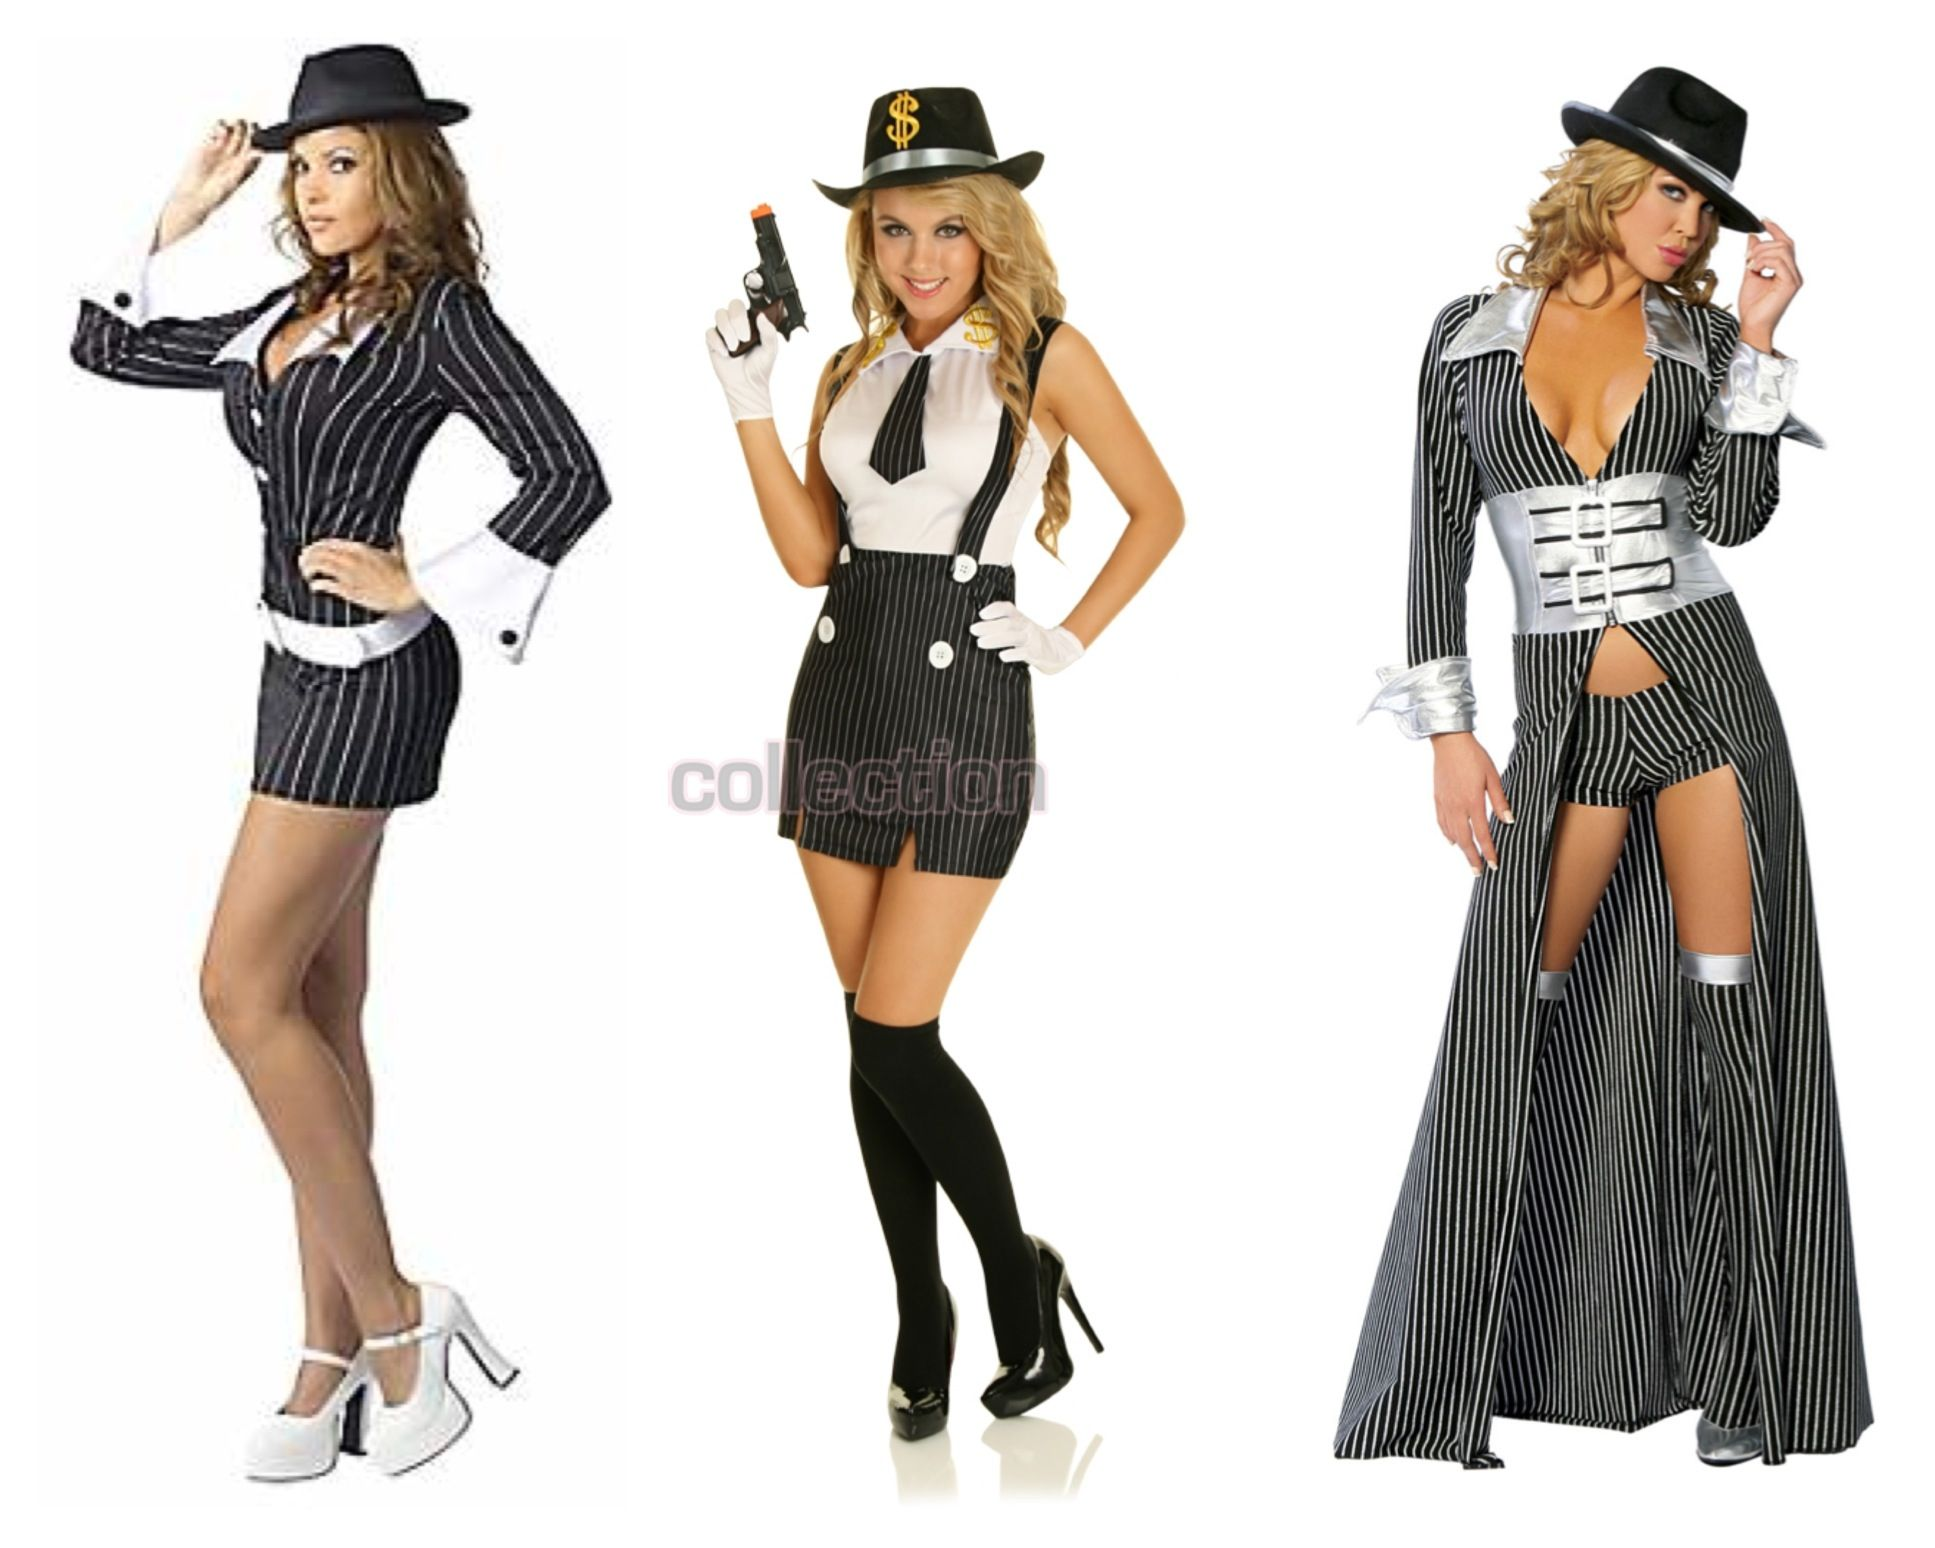 S gangster costumes st birthday outfit ideas